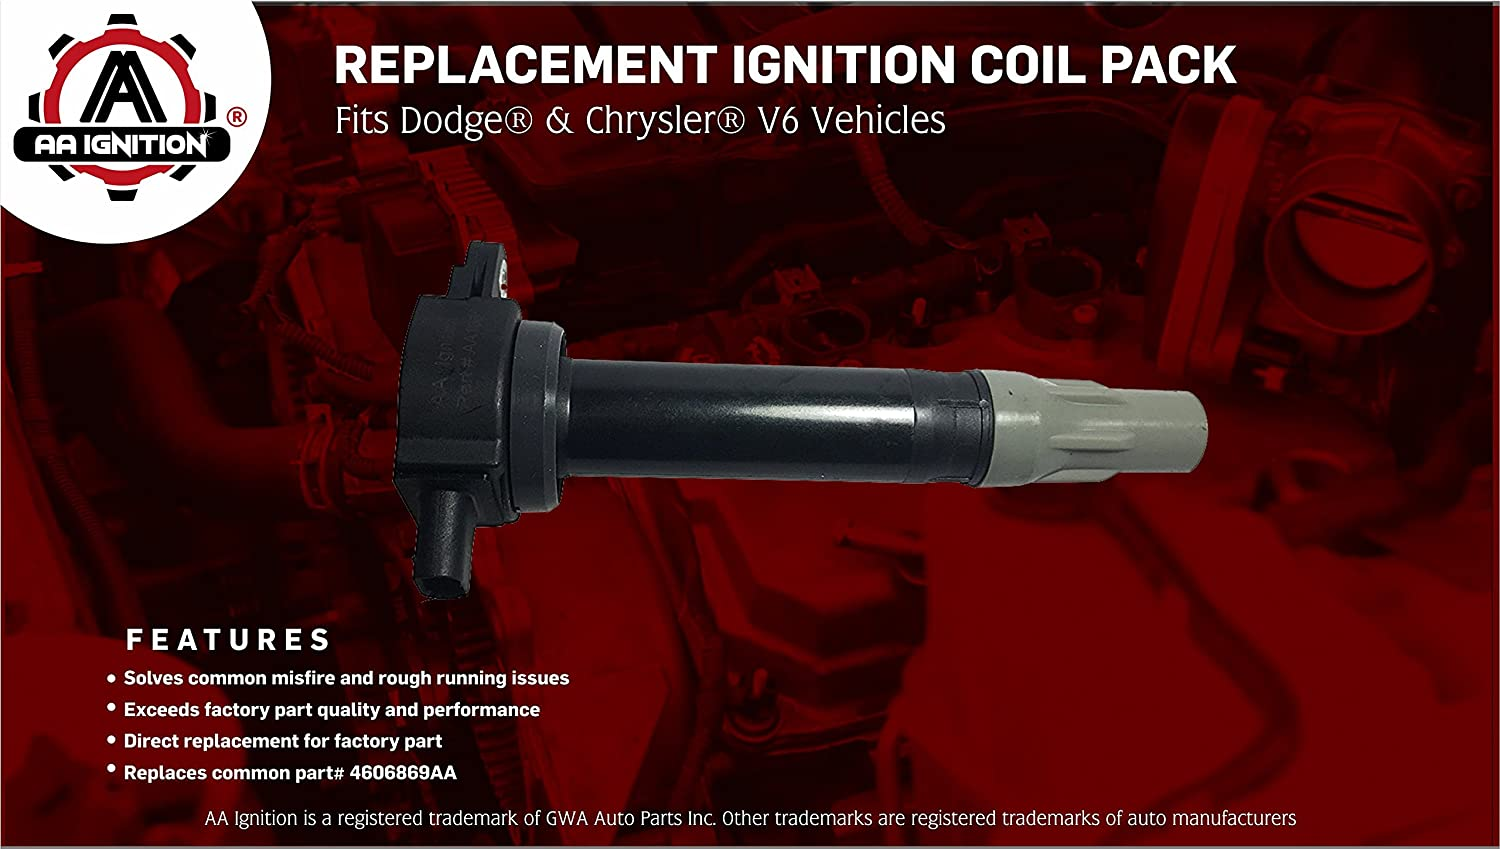 Ignition Coil Pack Fits Dodge Chrysler V6 25l 27l 2000 Sebring Spark Plugs Cables And Diagram 35l Replaces 4606869aa Magnum Charger Nitro Challenger